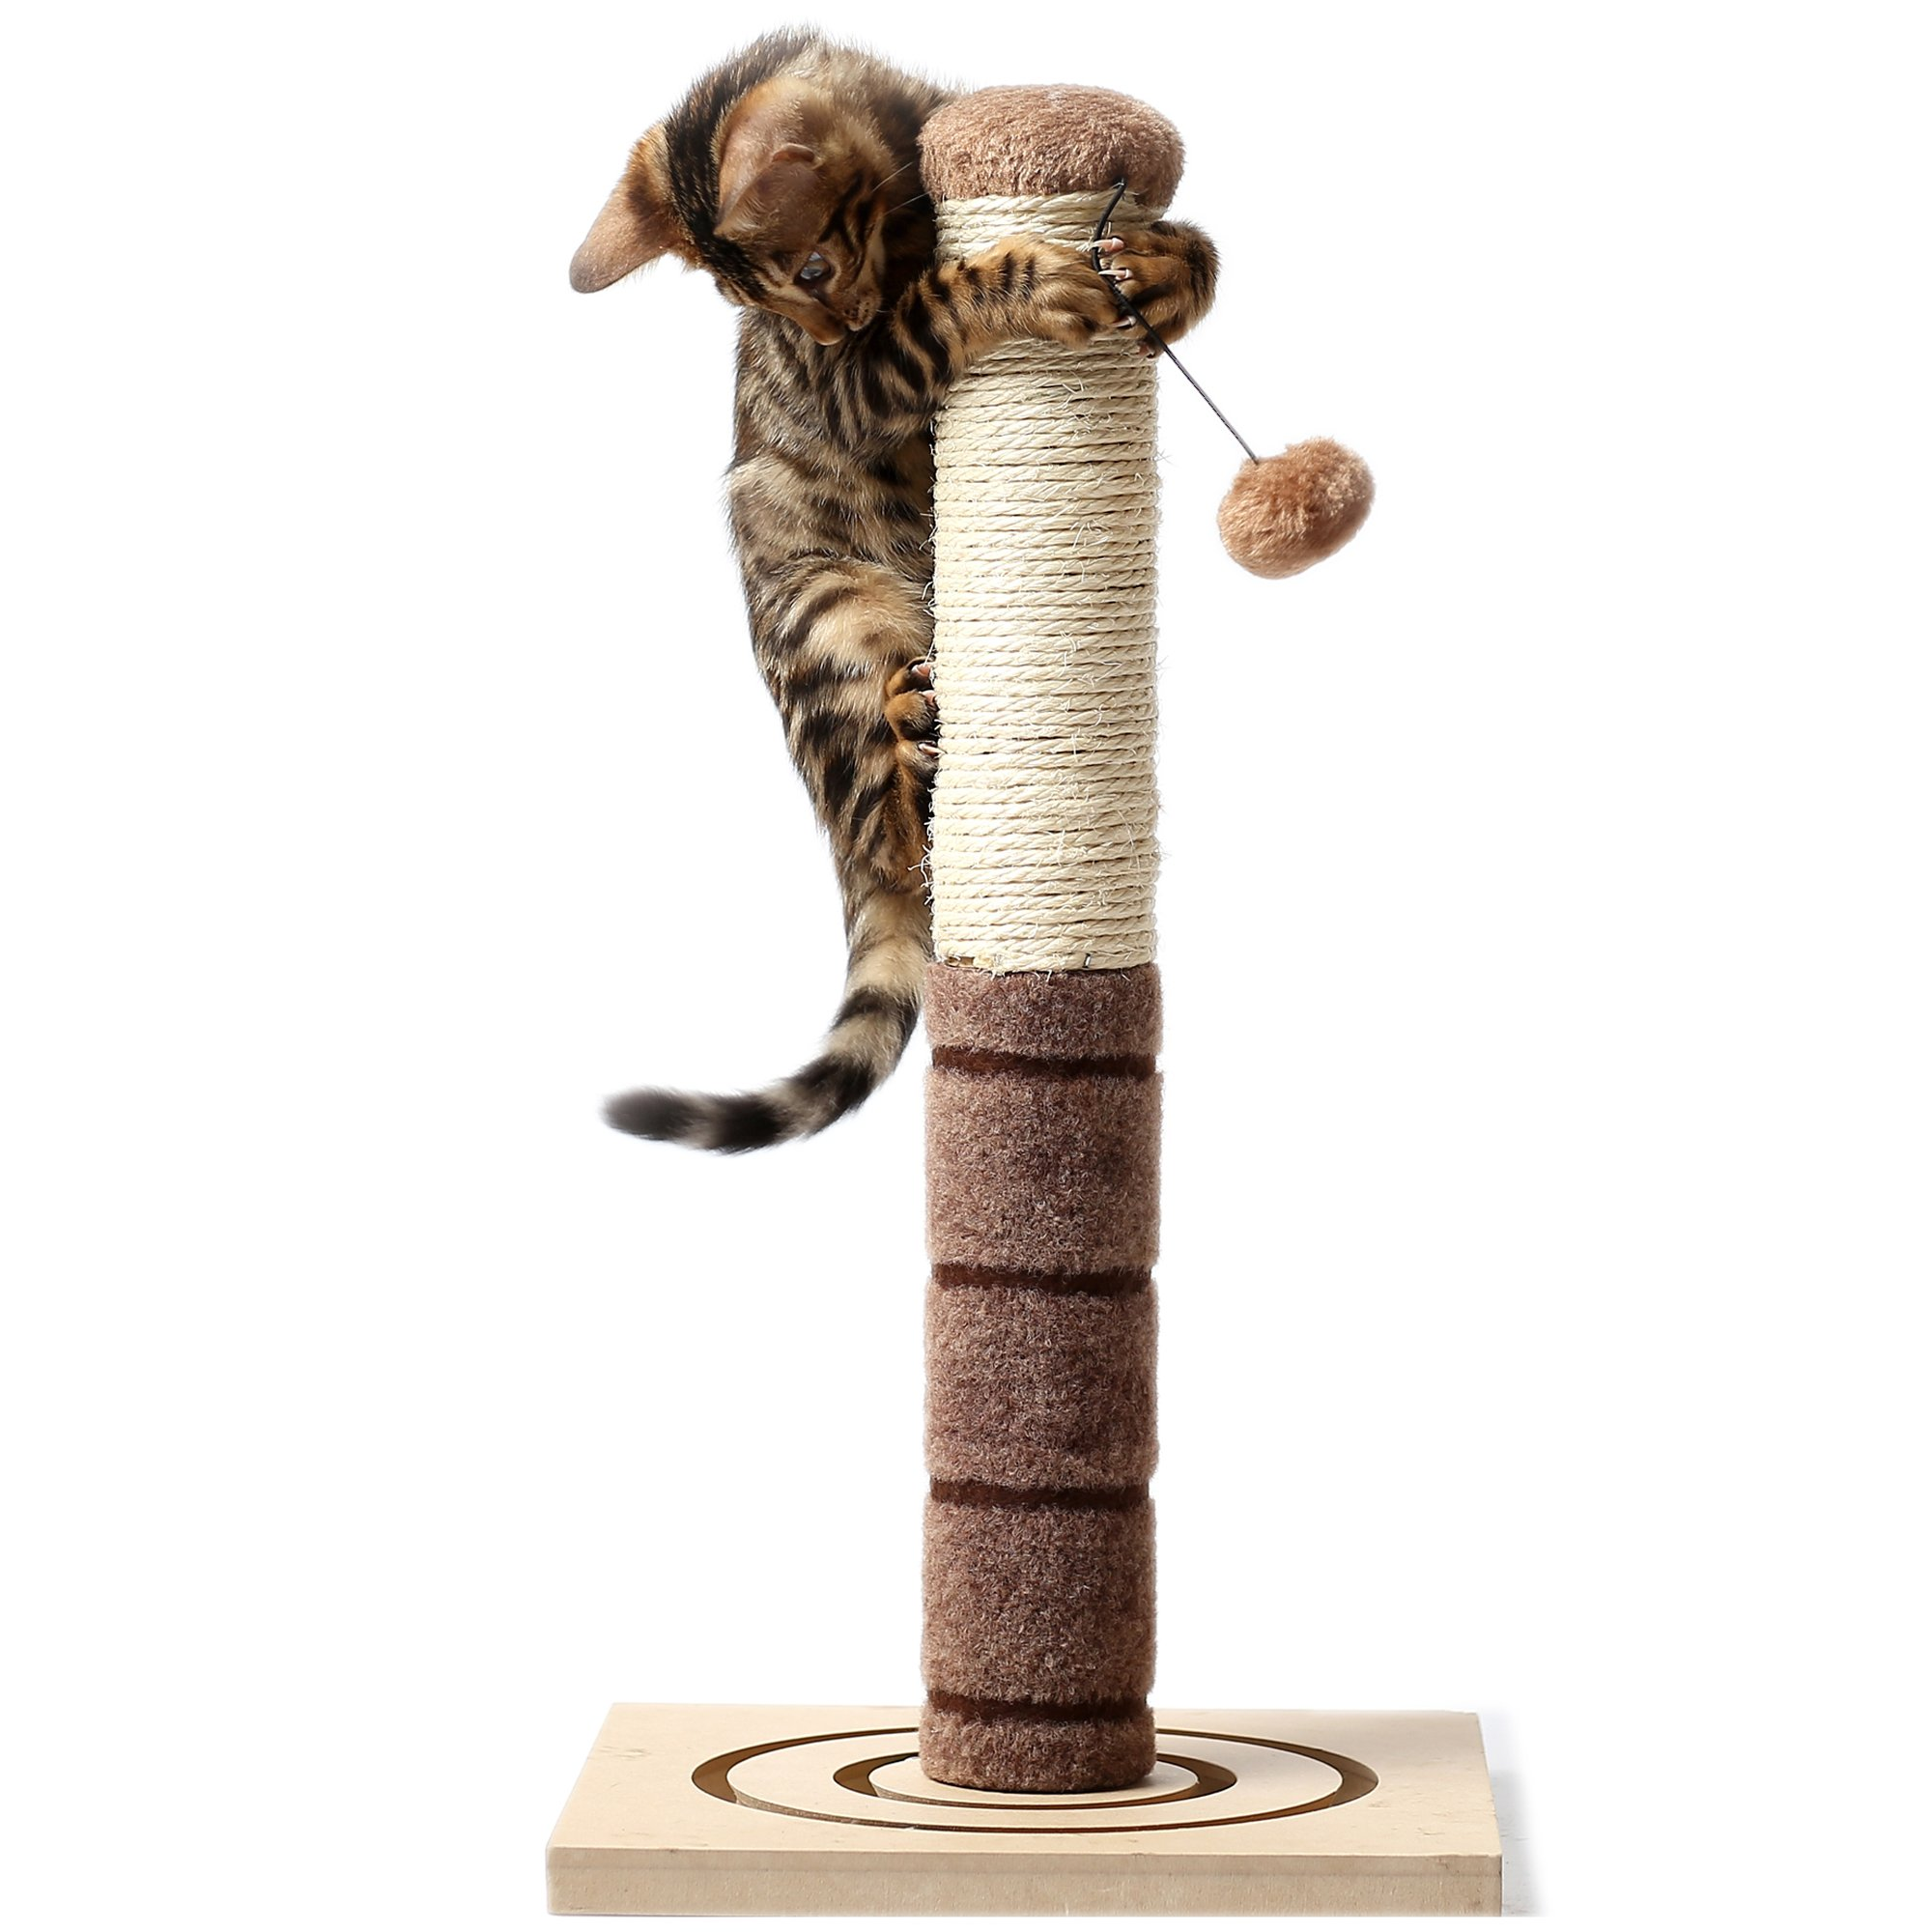 4 Paws Stuff Tall Cat Scratching Post Cat Interactive Toys - Cat Scratch Post Cats Kittens - Plush Sisal Scratch Pole Cat Scratcher - 22 inches (Beige) by 4 Paws Stuff